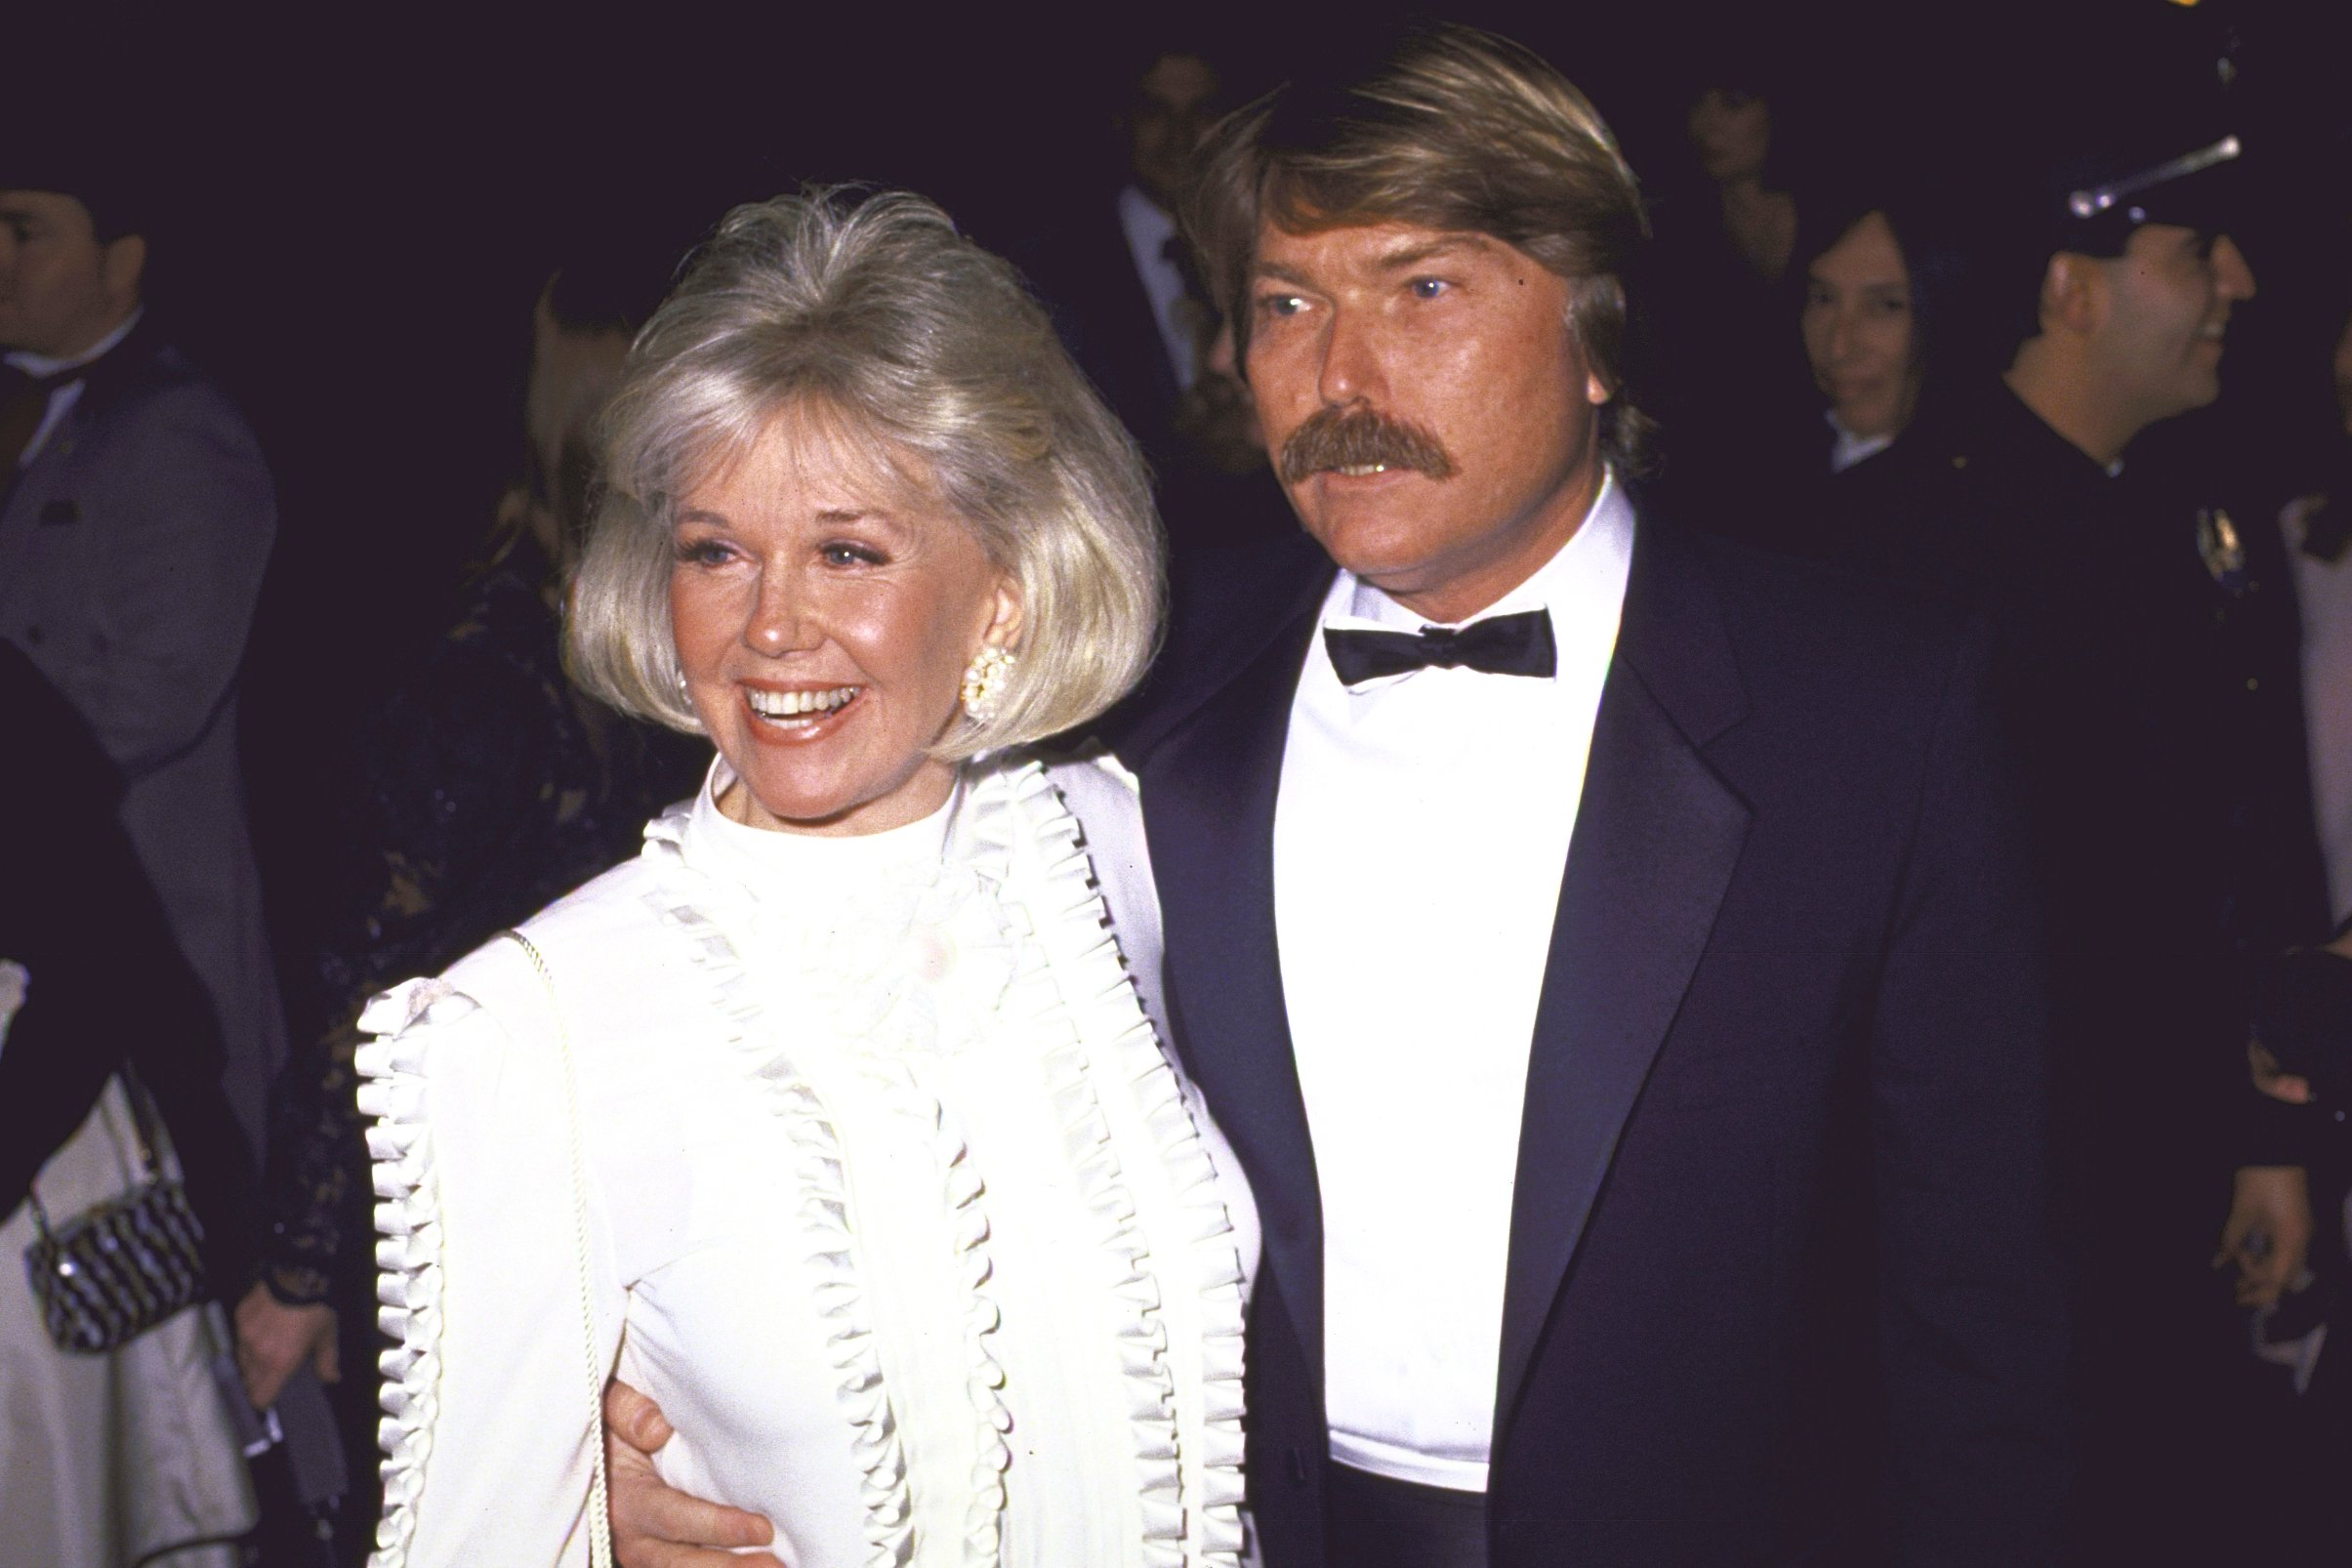 Image Credits: Getty Images / David Mcgough / DMI / The LIFE Picture Collection | Singer/actress Doris Day (1922 - 2019) and son Terry Melcher.